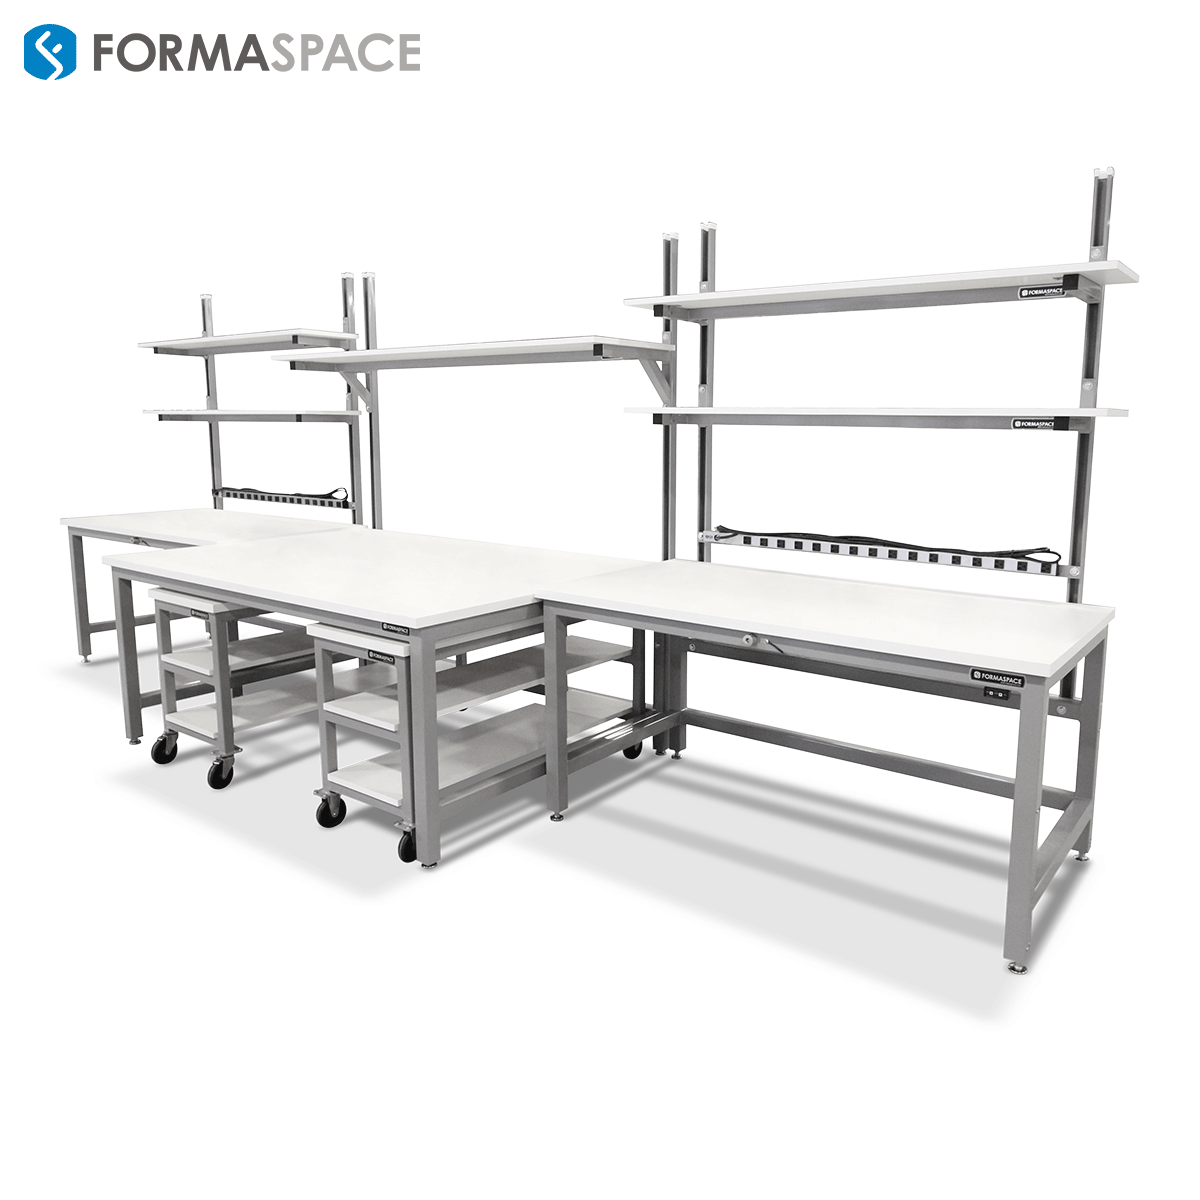 formaspace laboratory workbenches